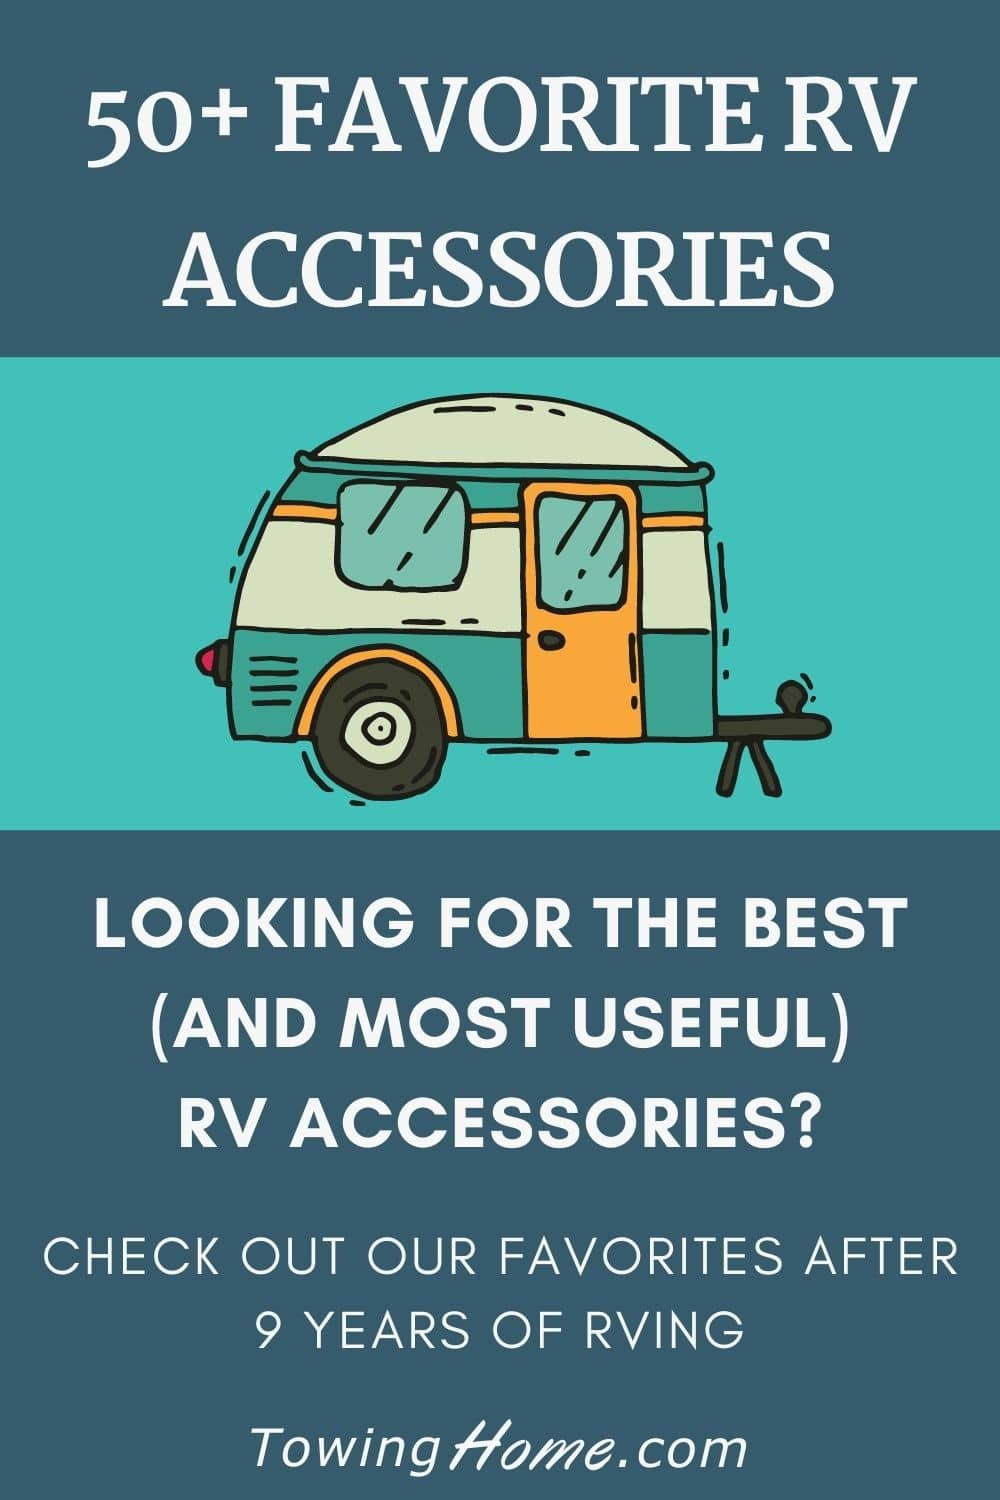 50+ Favorite RV Accessories - After 9 Years of RVing